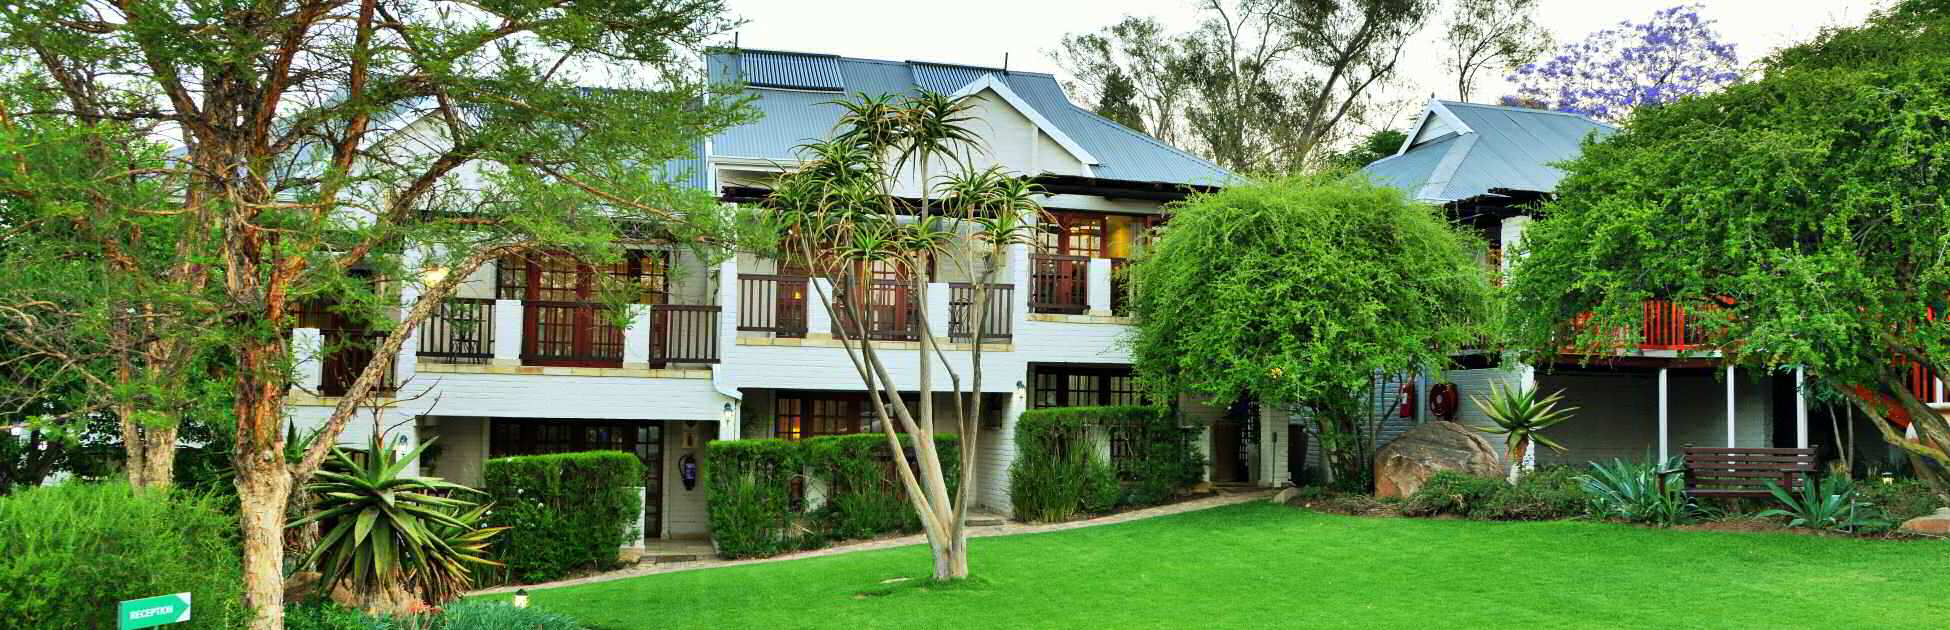 Rivonia Bed & Breakfast - Bed & Breakfast in Sandton